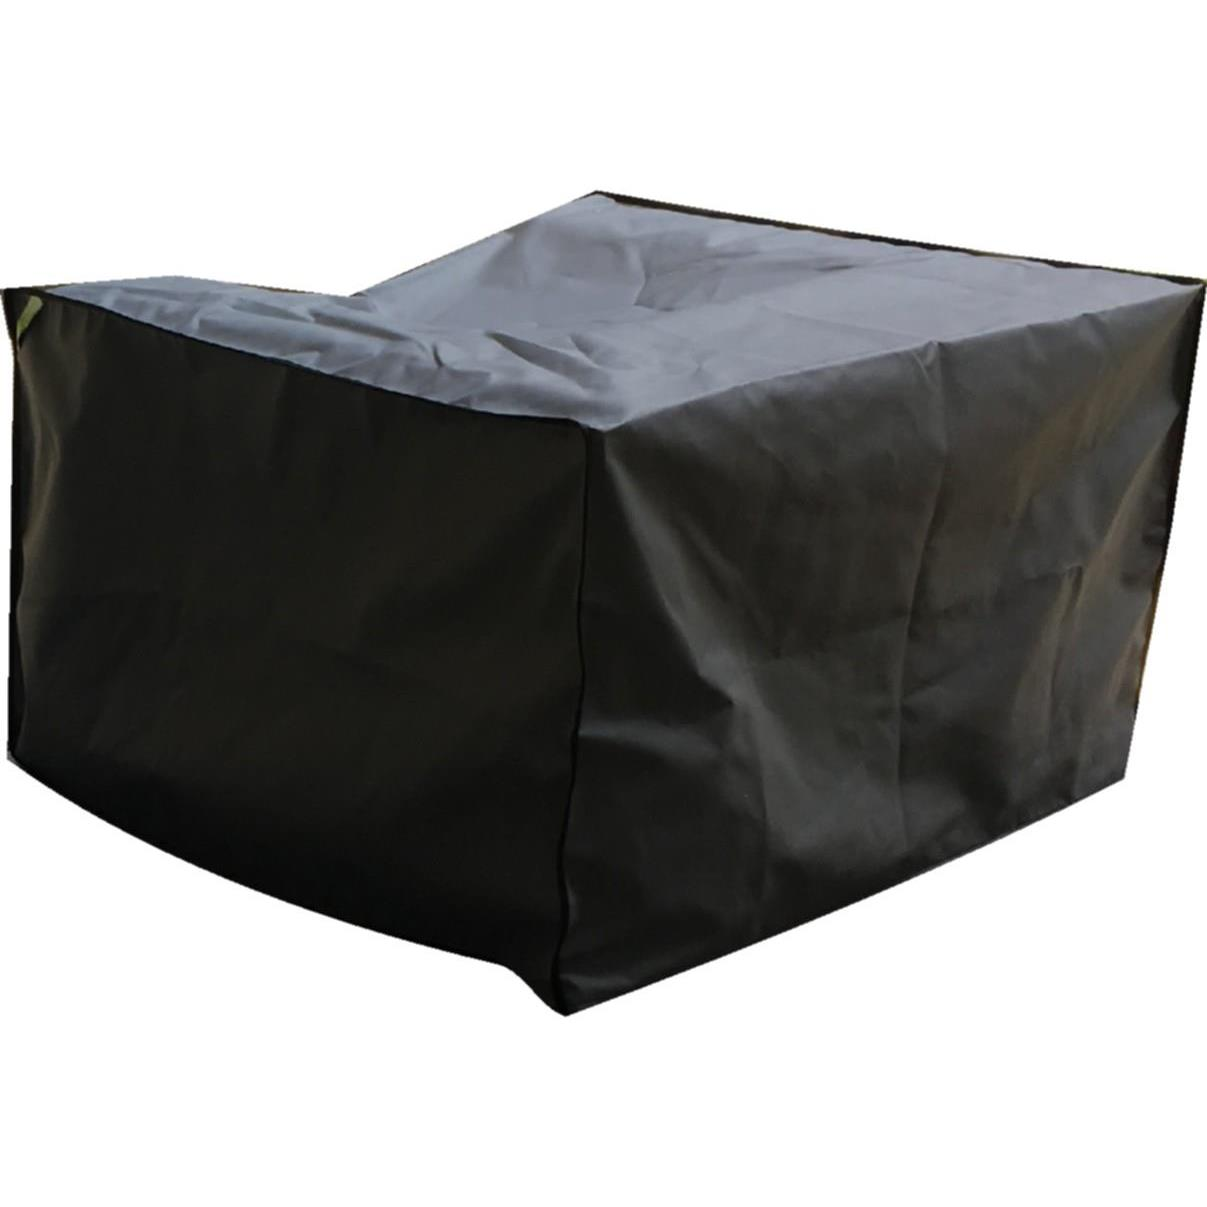 Patio Solution Covers Armchair Cover (Charcoal)